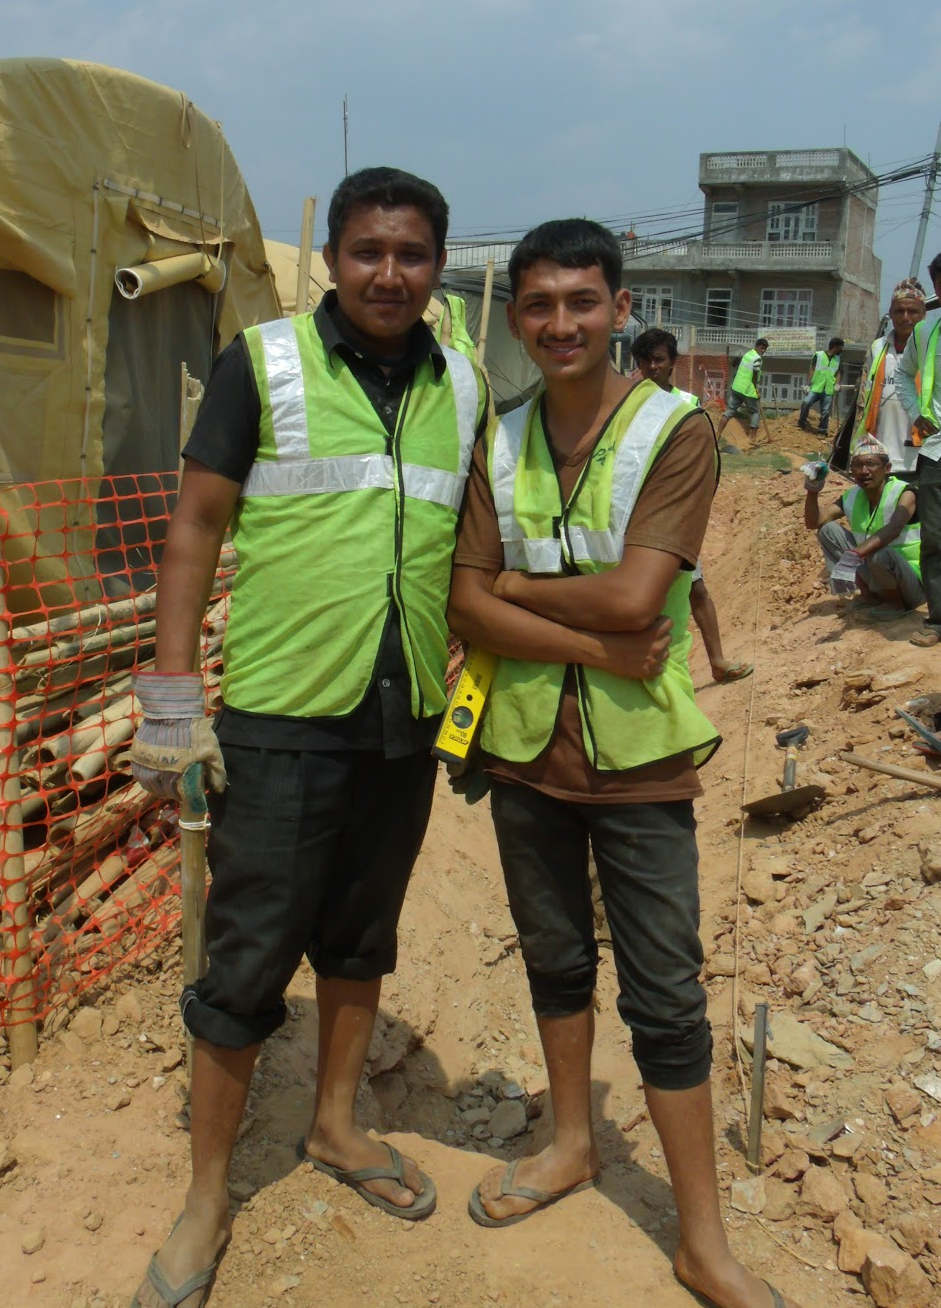 """""""Money the biggest challenge, to rebuild houses. Water supply big challenge, Earthquake                  destroyed the pipes, we're having to travel further to get water""""                Prakash and Pralhad BK, Chautara, Sindhupalchok 8.7.15"""